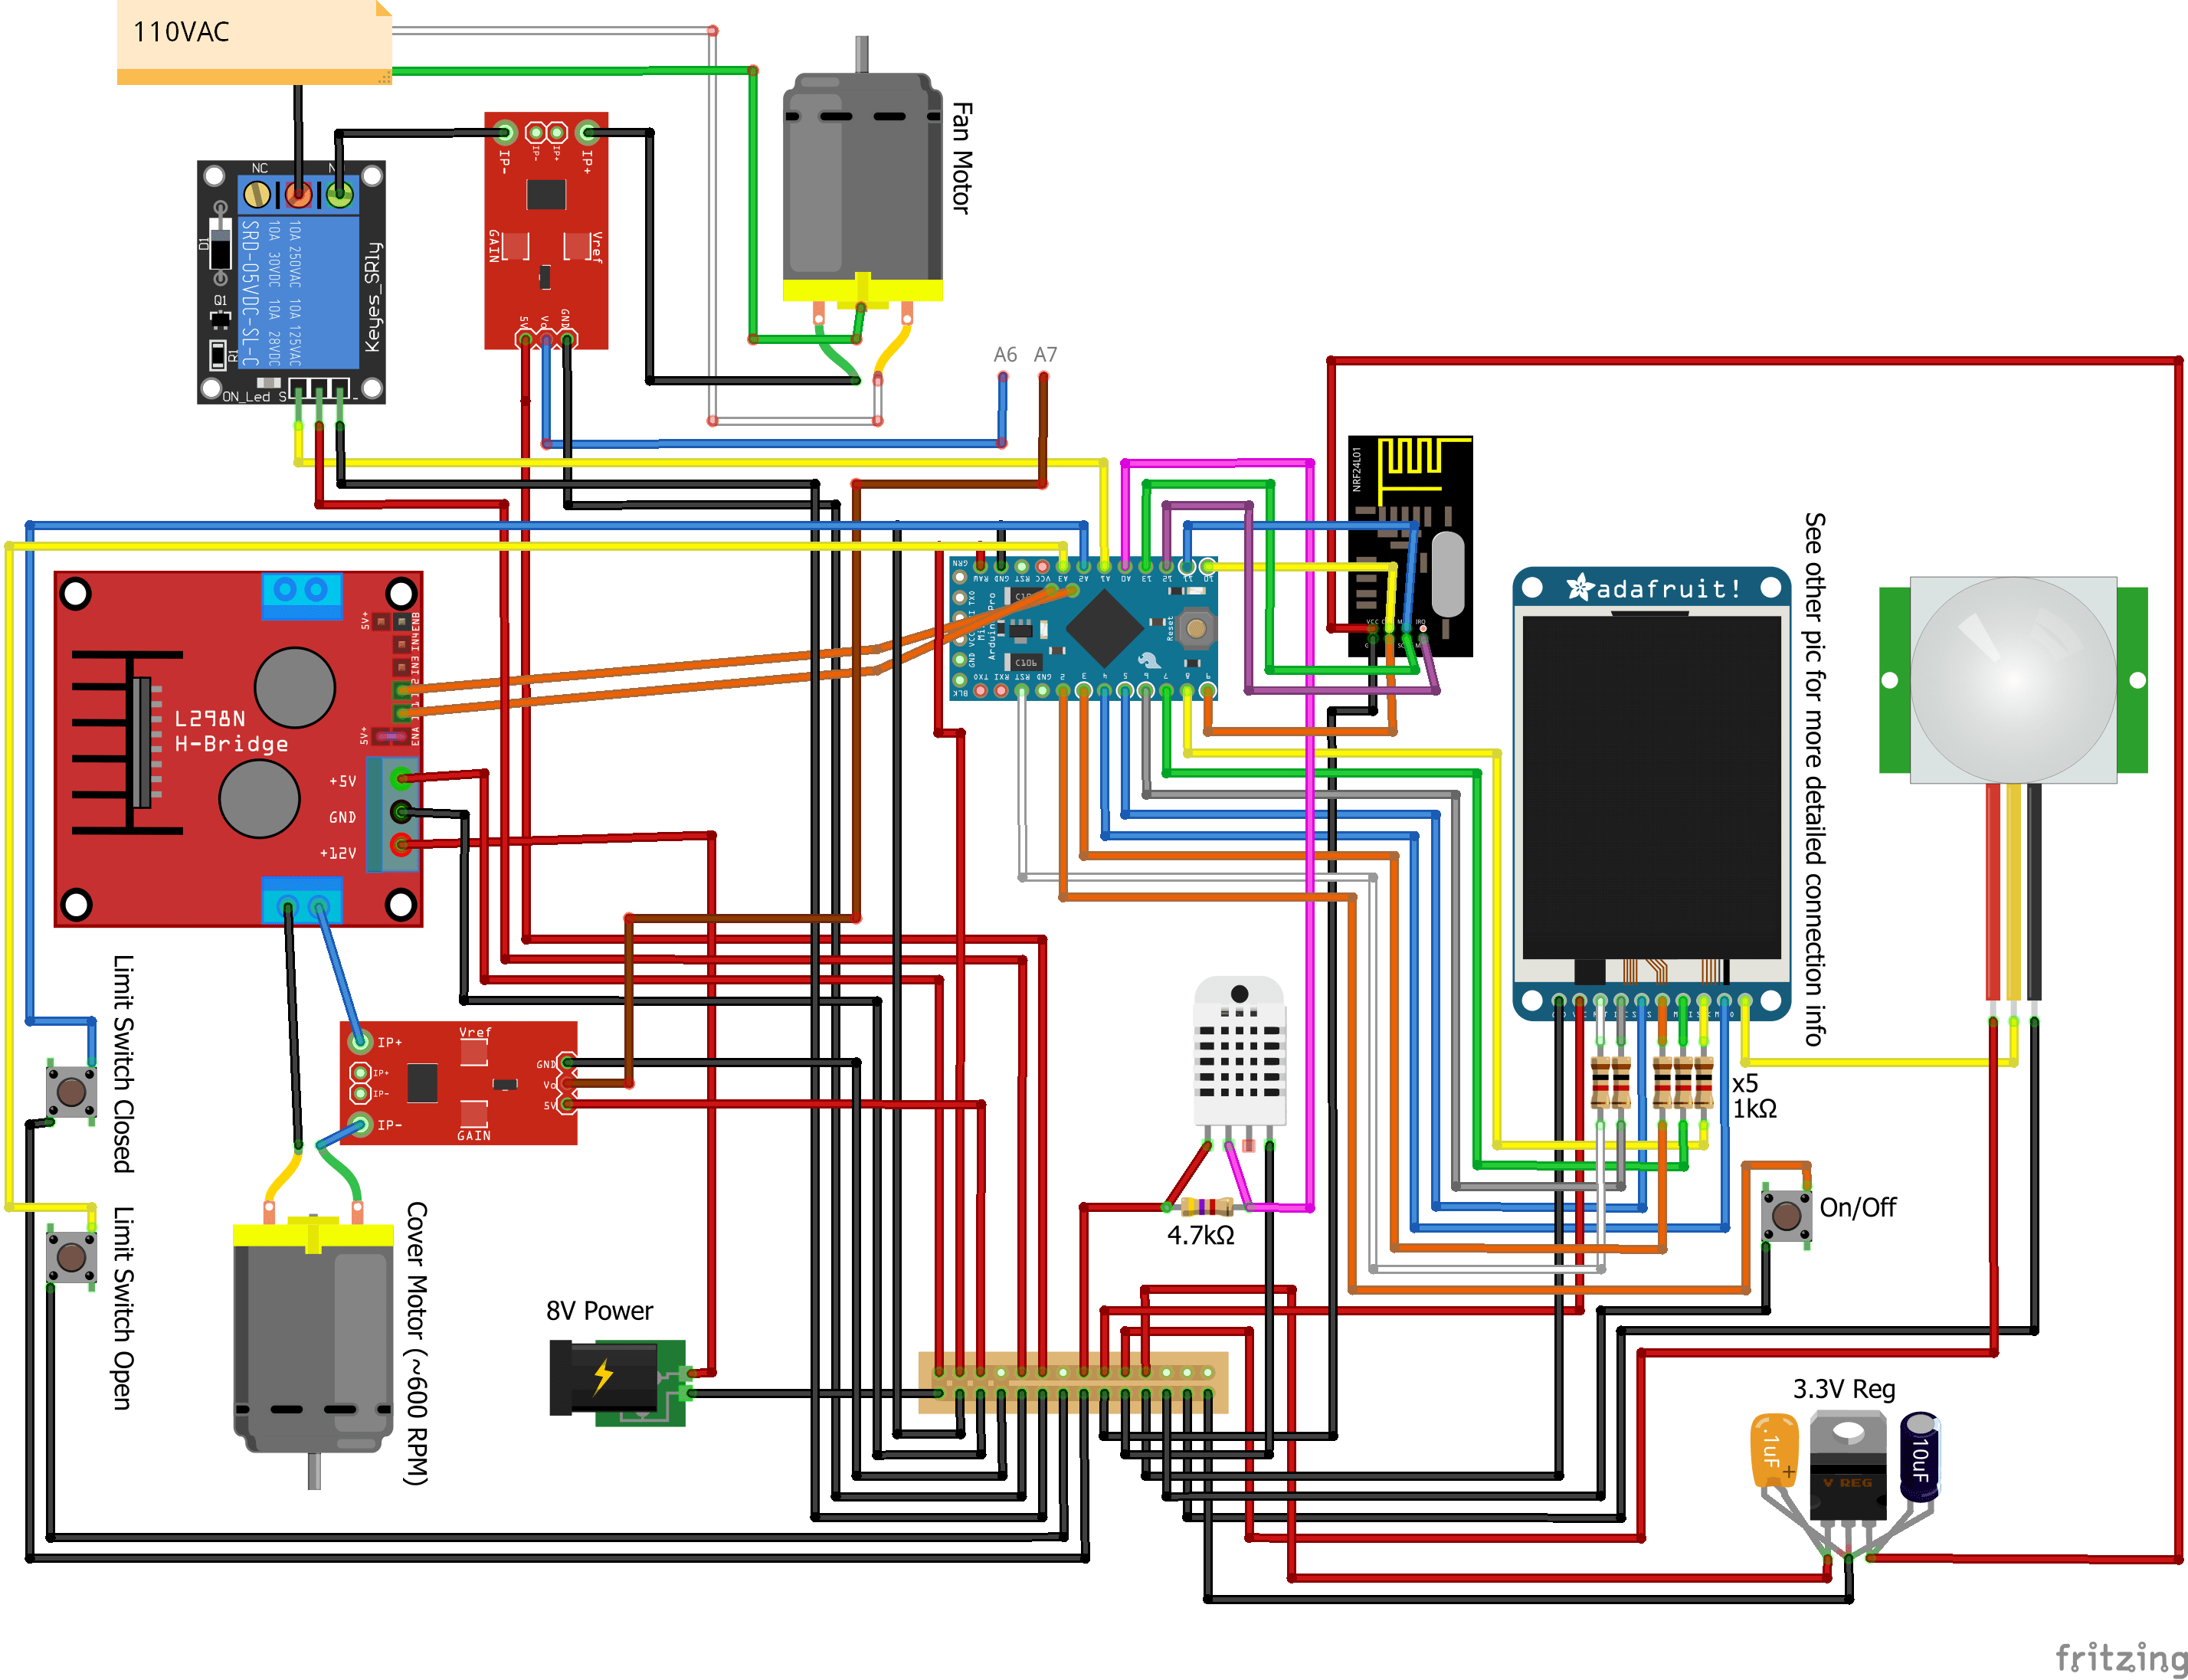 Fritzing Whole House Fan Wiring?resize\\\\\\\\\\\\\\\\\\\\\\\\\\\\\\\\\\\\\\\\\\\\\\\=665%2C511\\\\\\\\\\\\\\\\\\\\\\\\\\\\\\\\\\\\\\\\\\\\\\\&ssl\\\\\\\\\\\\\\\\\\\\\\\\\\\\\\\\\\\\\\\\\\\\\\\=1 clayton 1600g wood furnace wiring diagrams wiring diagrams clayton wood furnace wiring diagram at nearapp.co